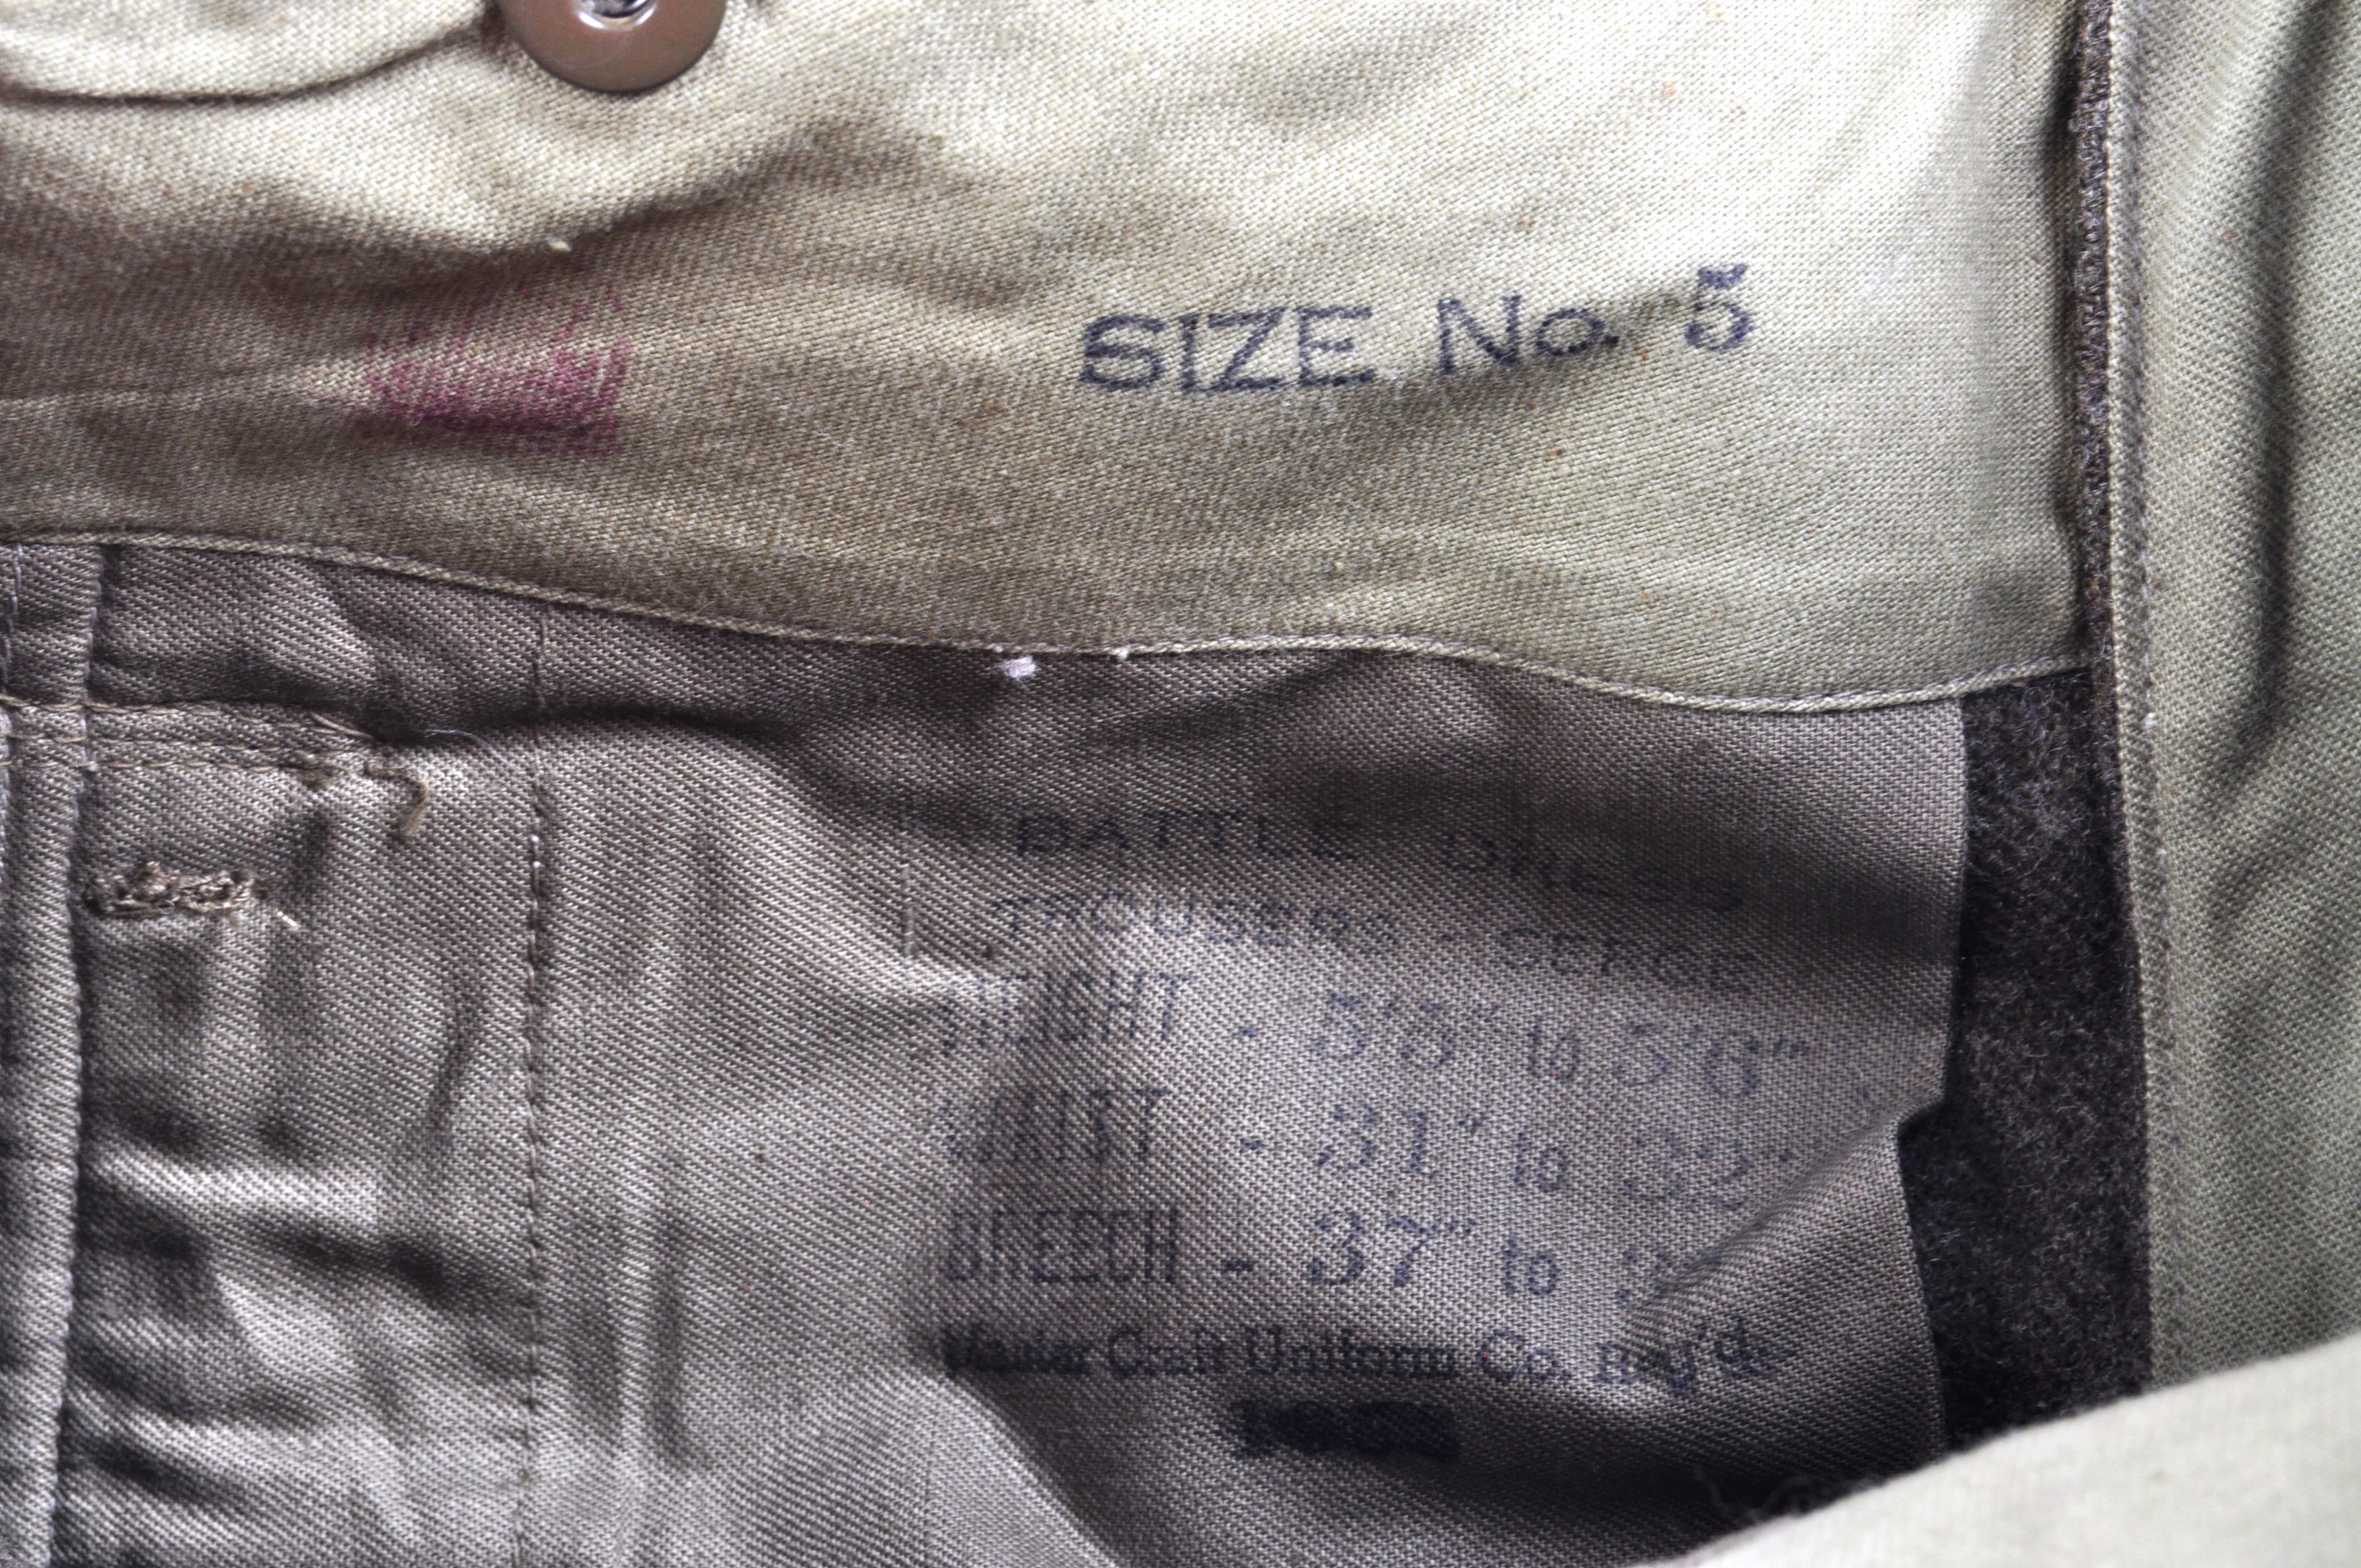 WWII SECOND WORLD WAR INTEREST - BRITISH ARMY TROUSERS - Image 4 of 7